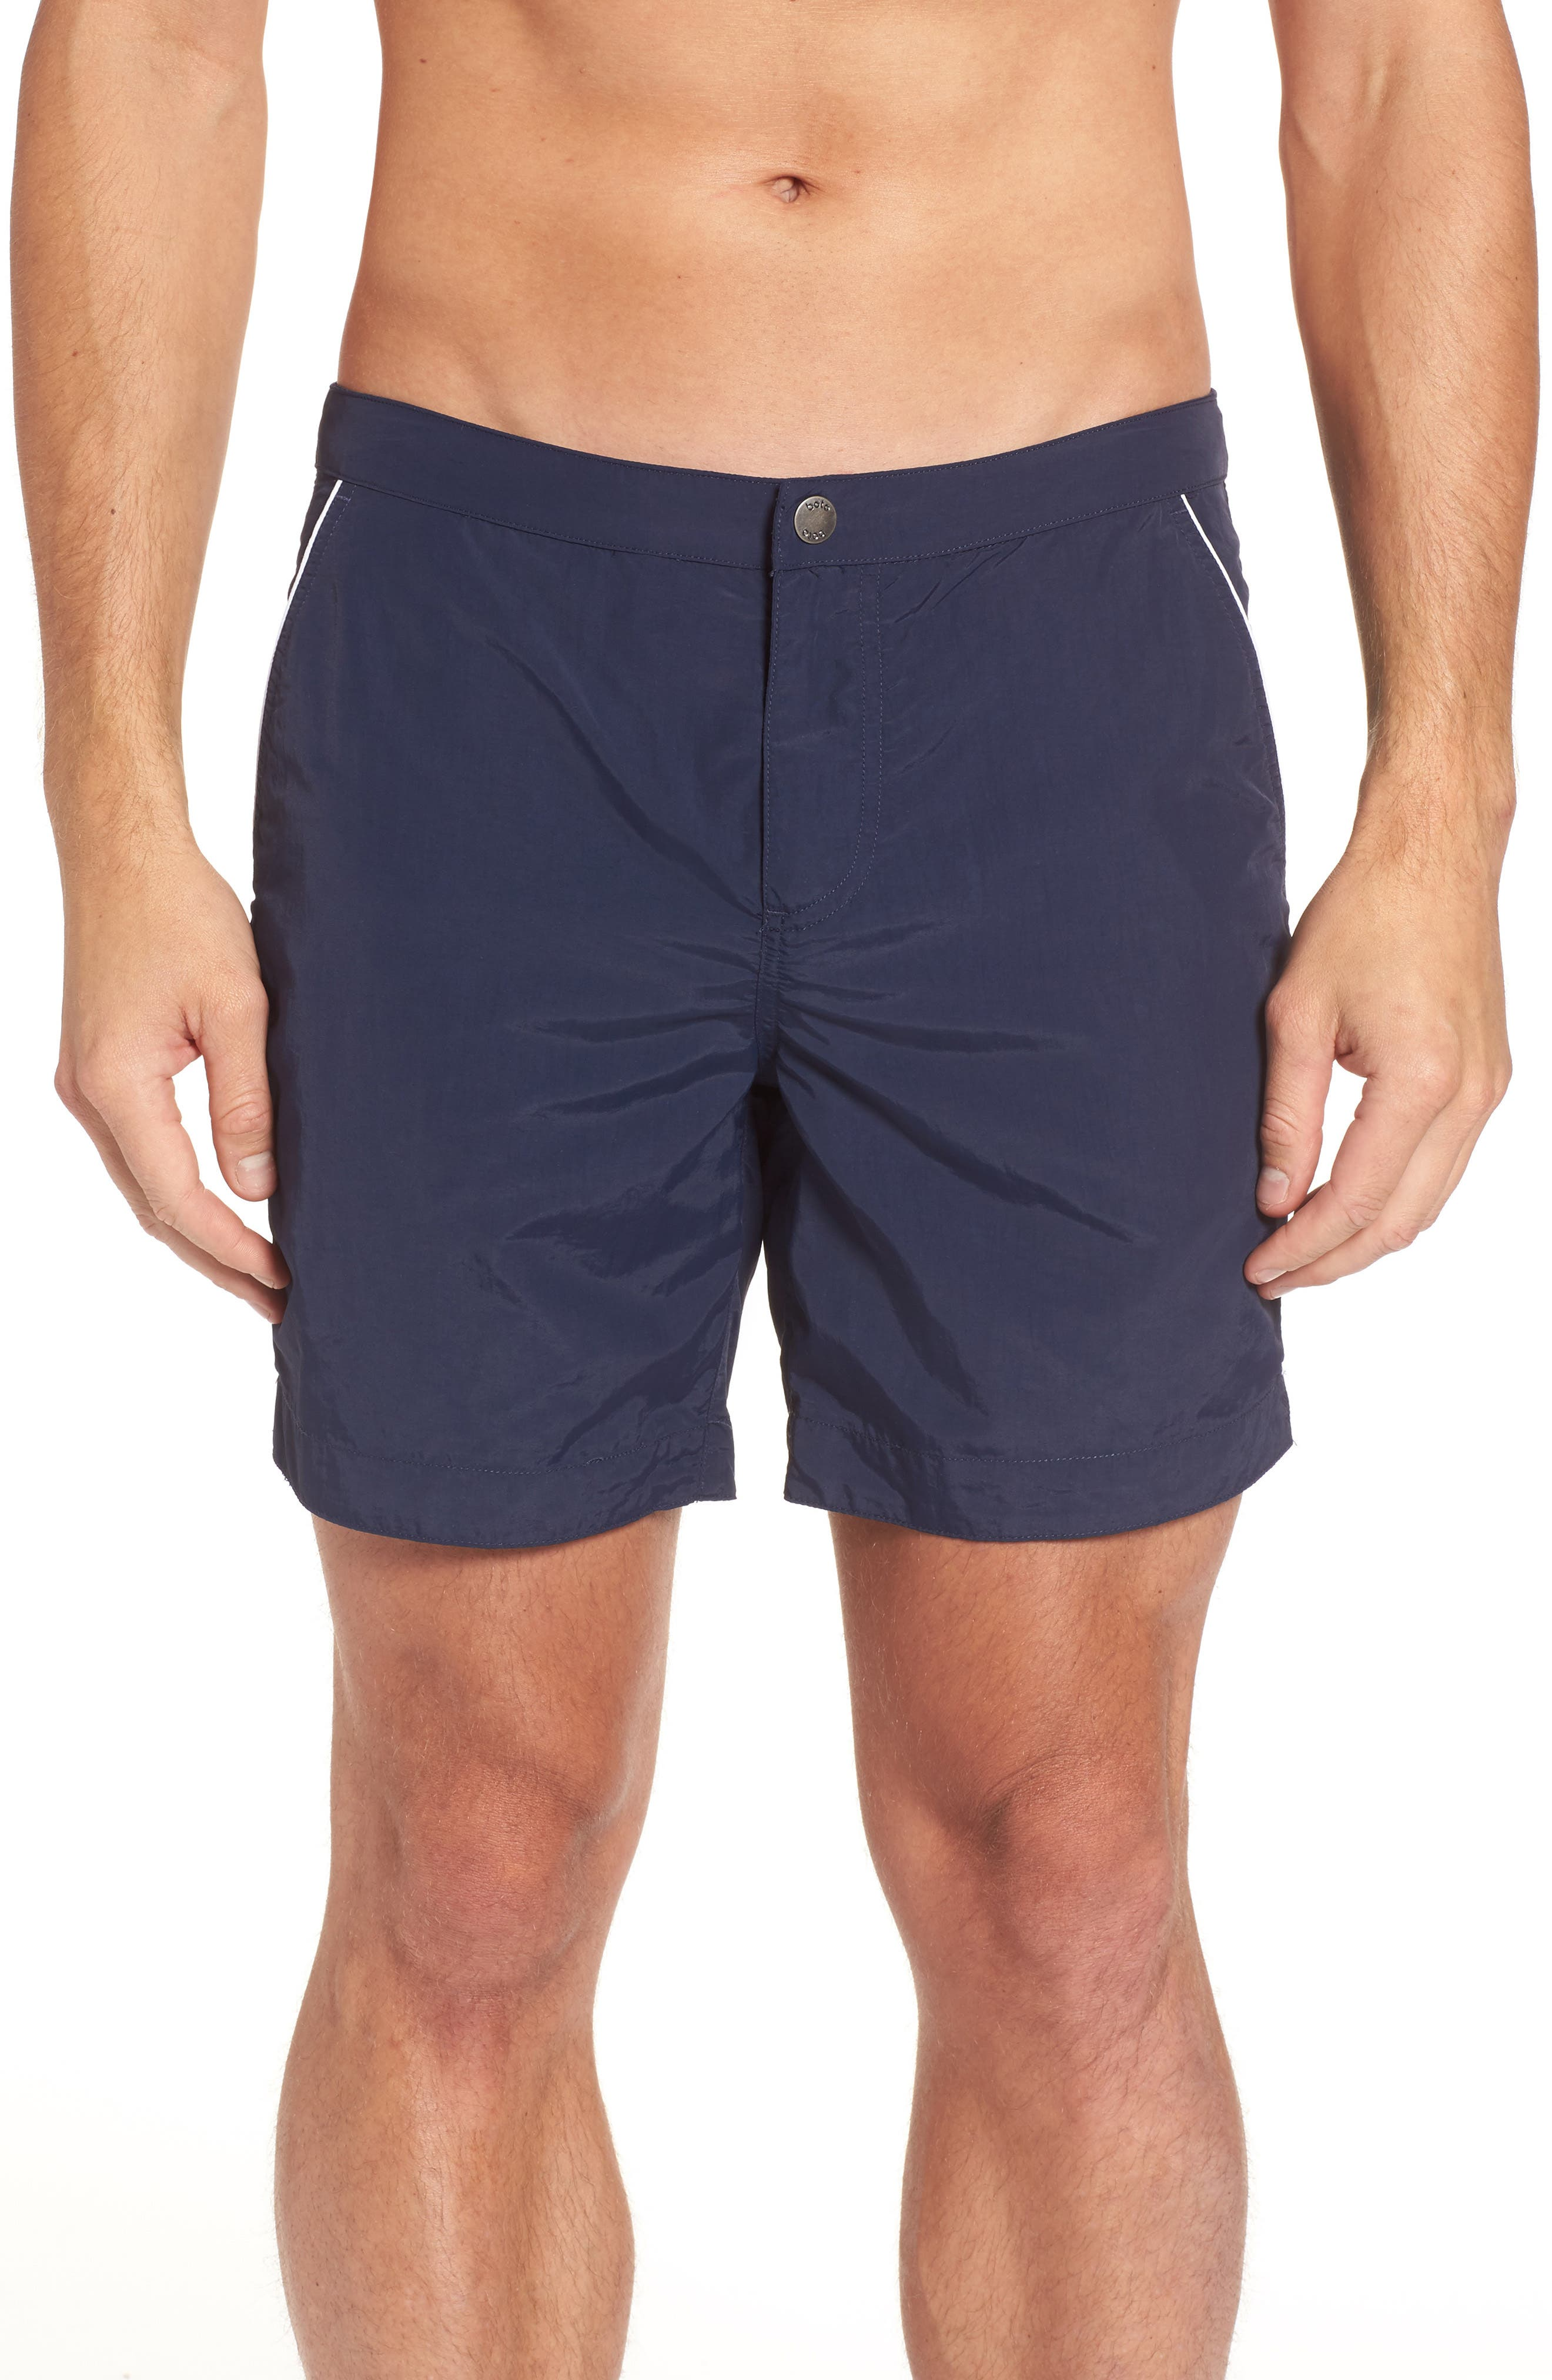 Rio Regular Fit Swim Trunks,                         Main,                         color, NAVY SOLID